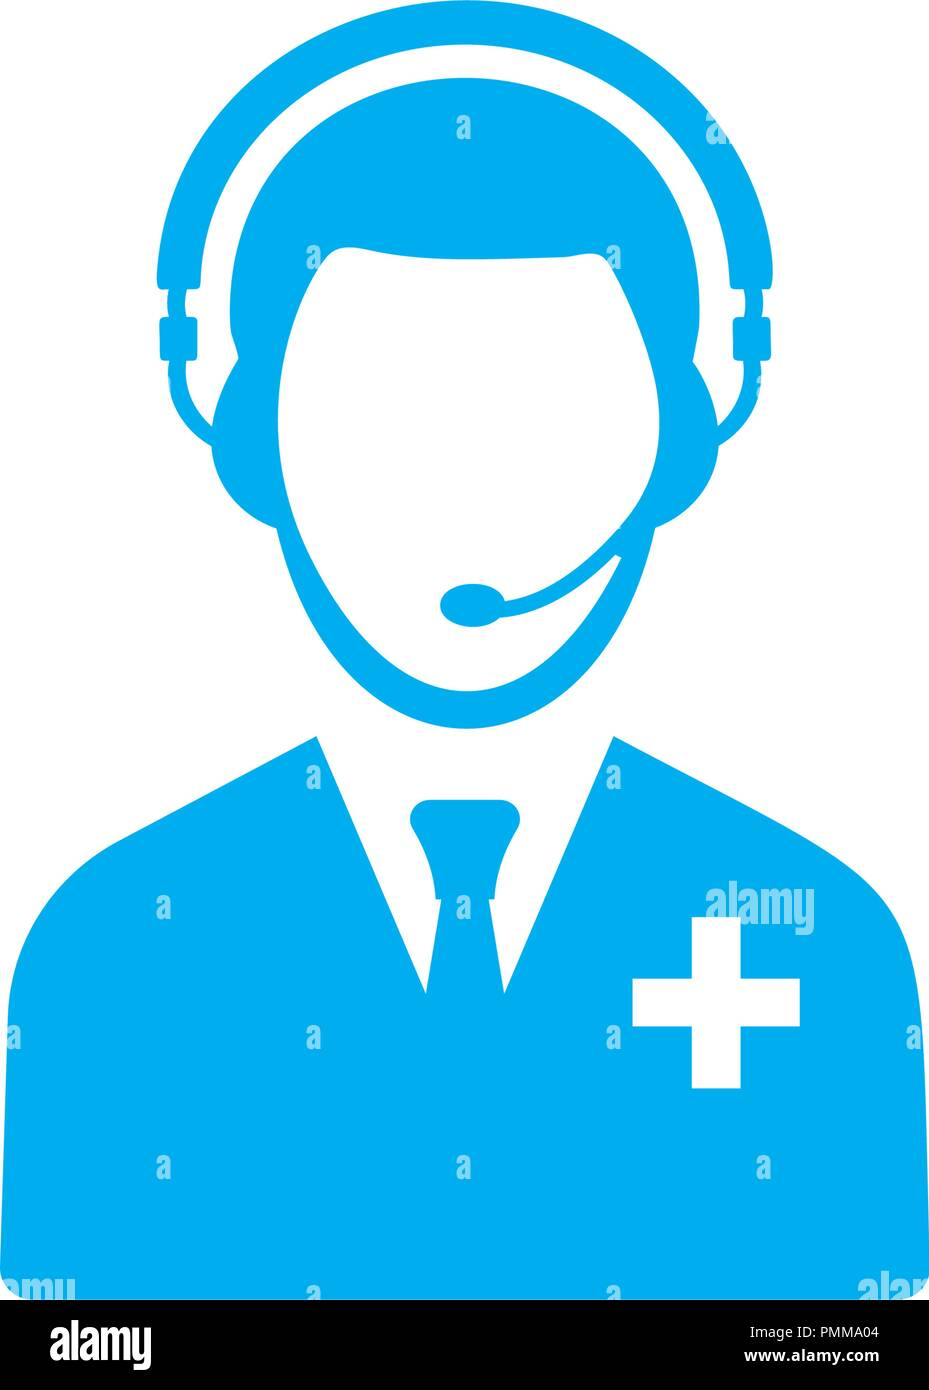 call center icon high resolution stock photography and images alamy https www alamy com medical call center icon blue image219264420 html